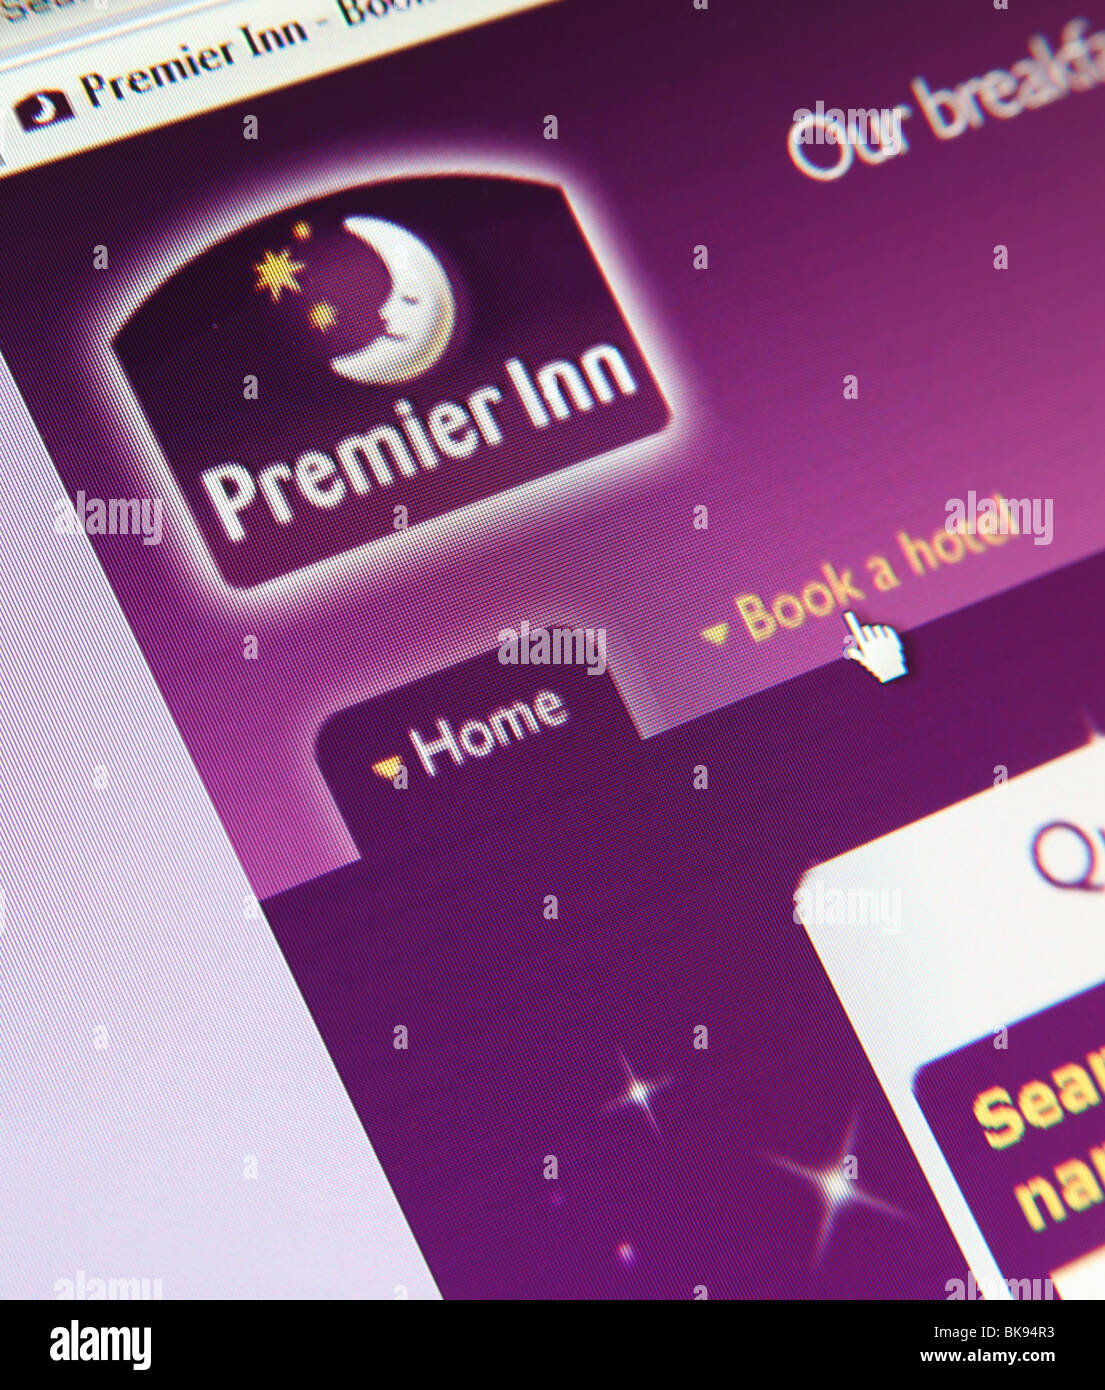 Premier Inn Page d'accueil du site Photo Stock